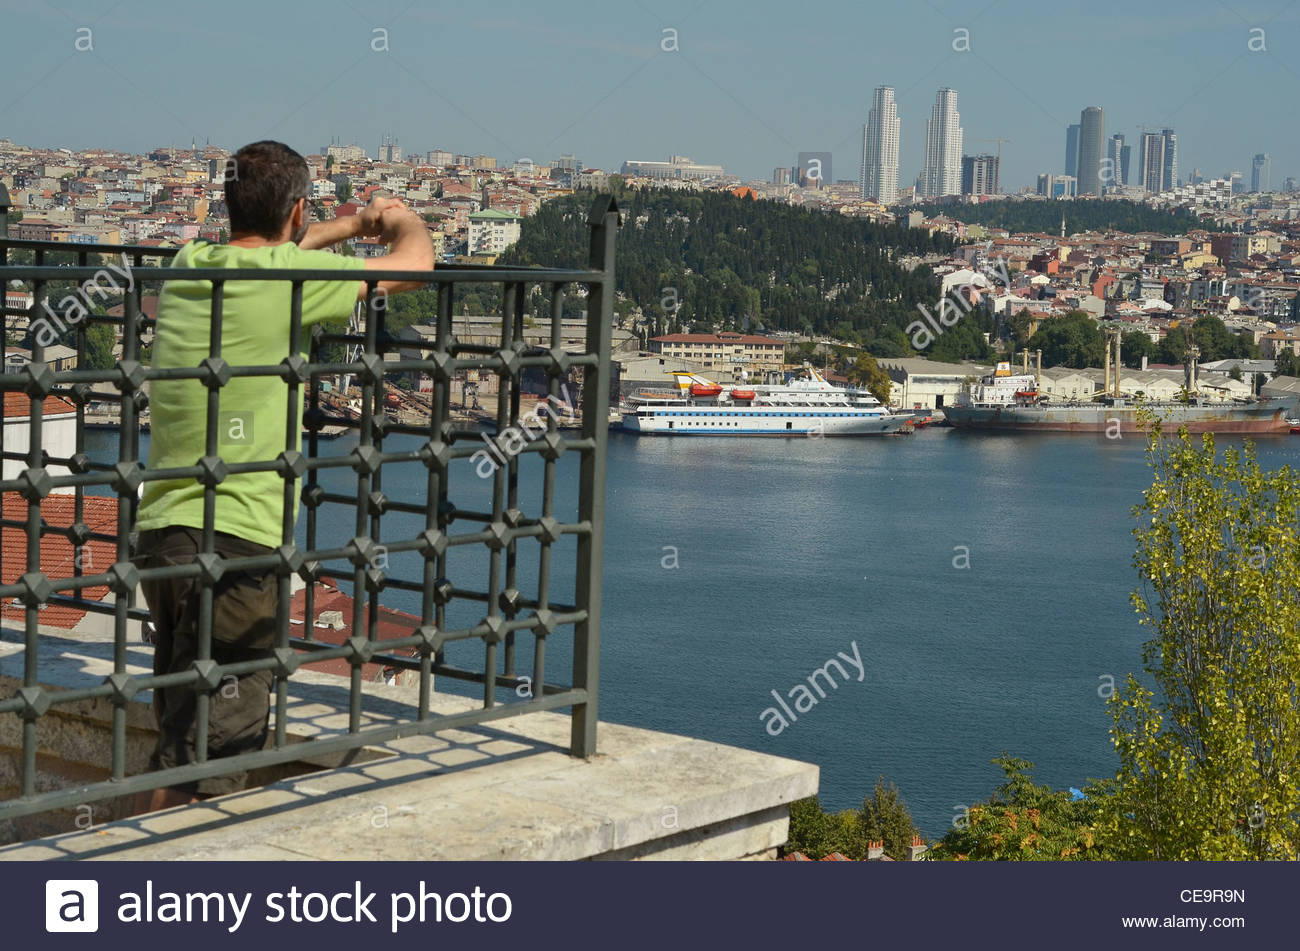 A man looks at the Golden Horn and the skyscrapers of the Levent business district from a vantage point in Fatih, - Stock Image